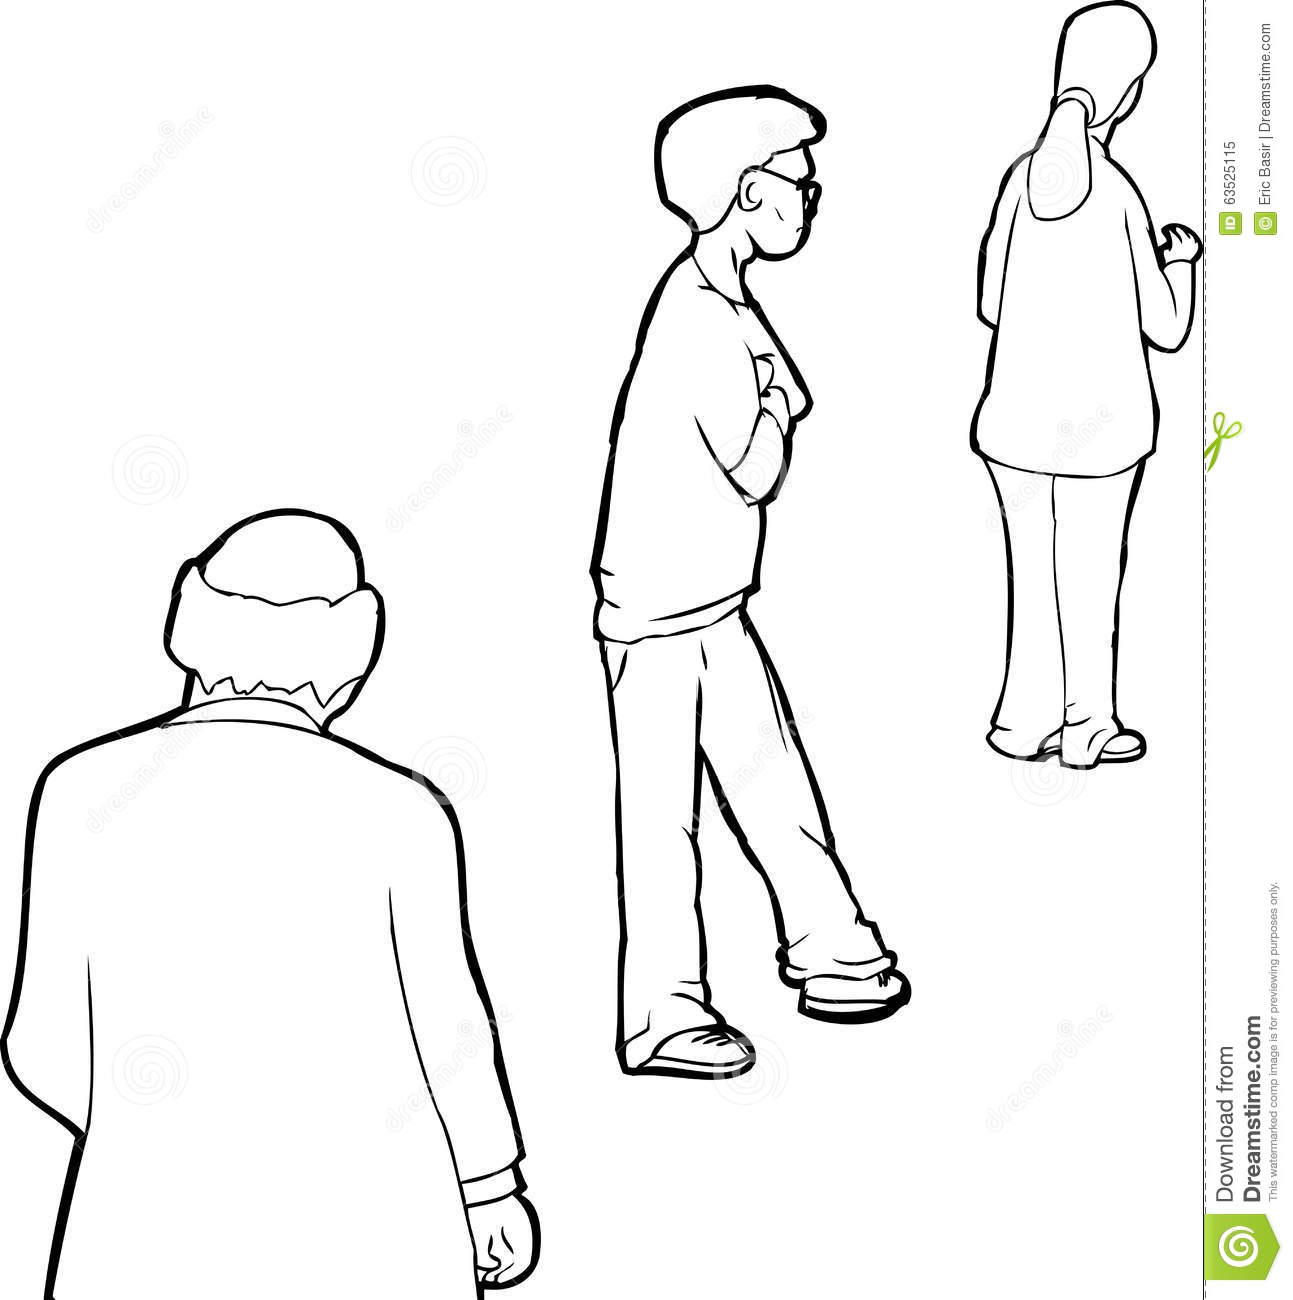 Outline Of People In Line Stock Illustration